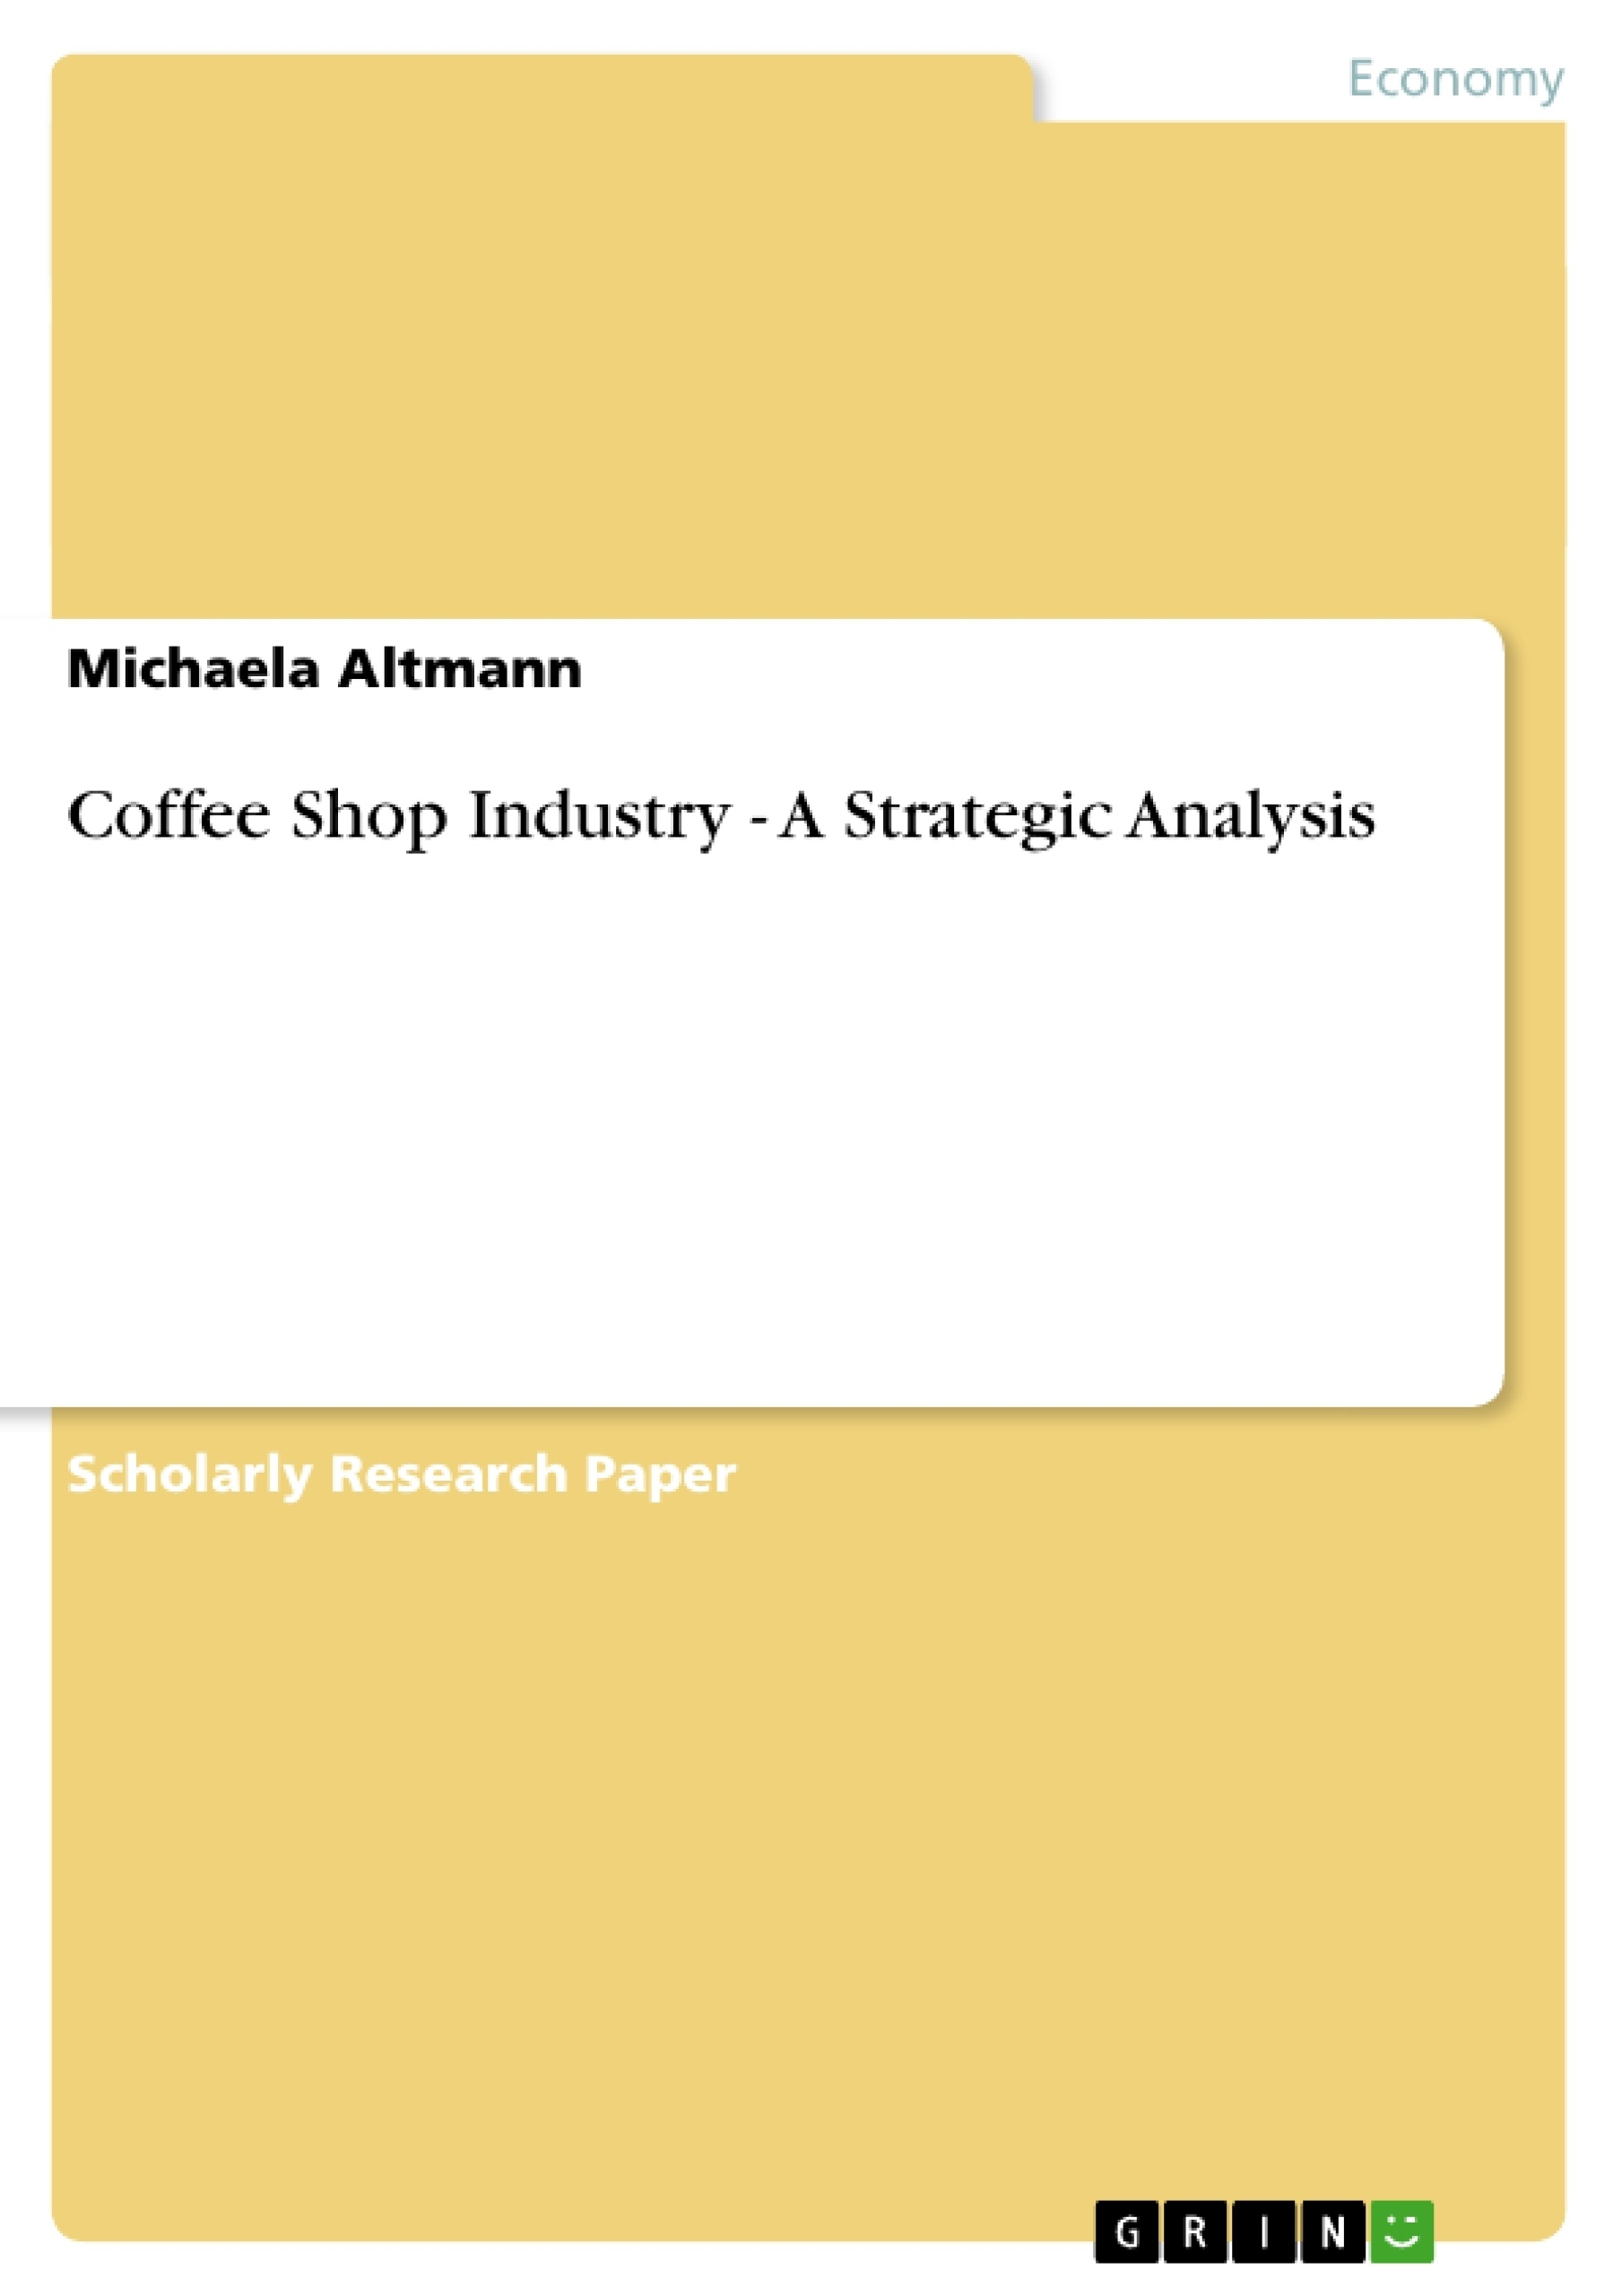 Coffee industry research paper